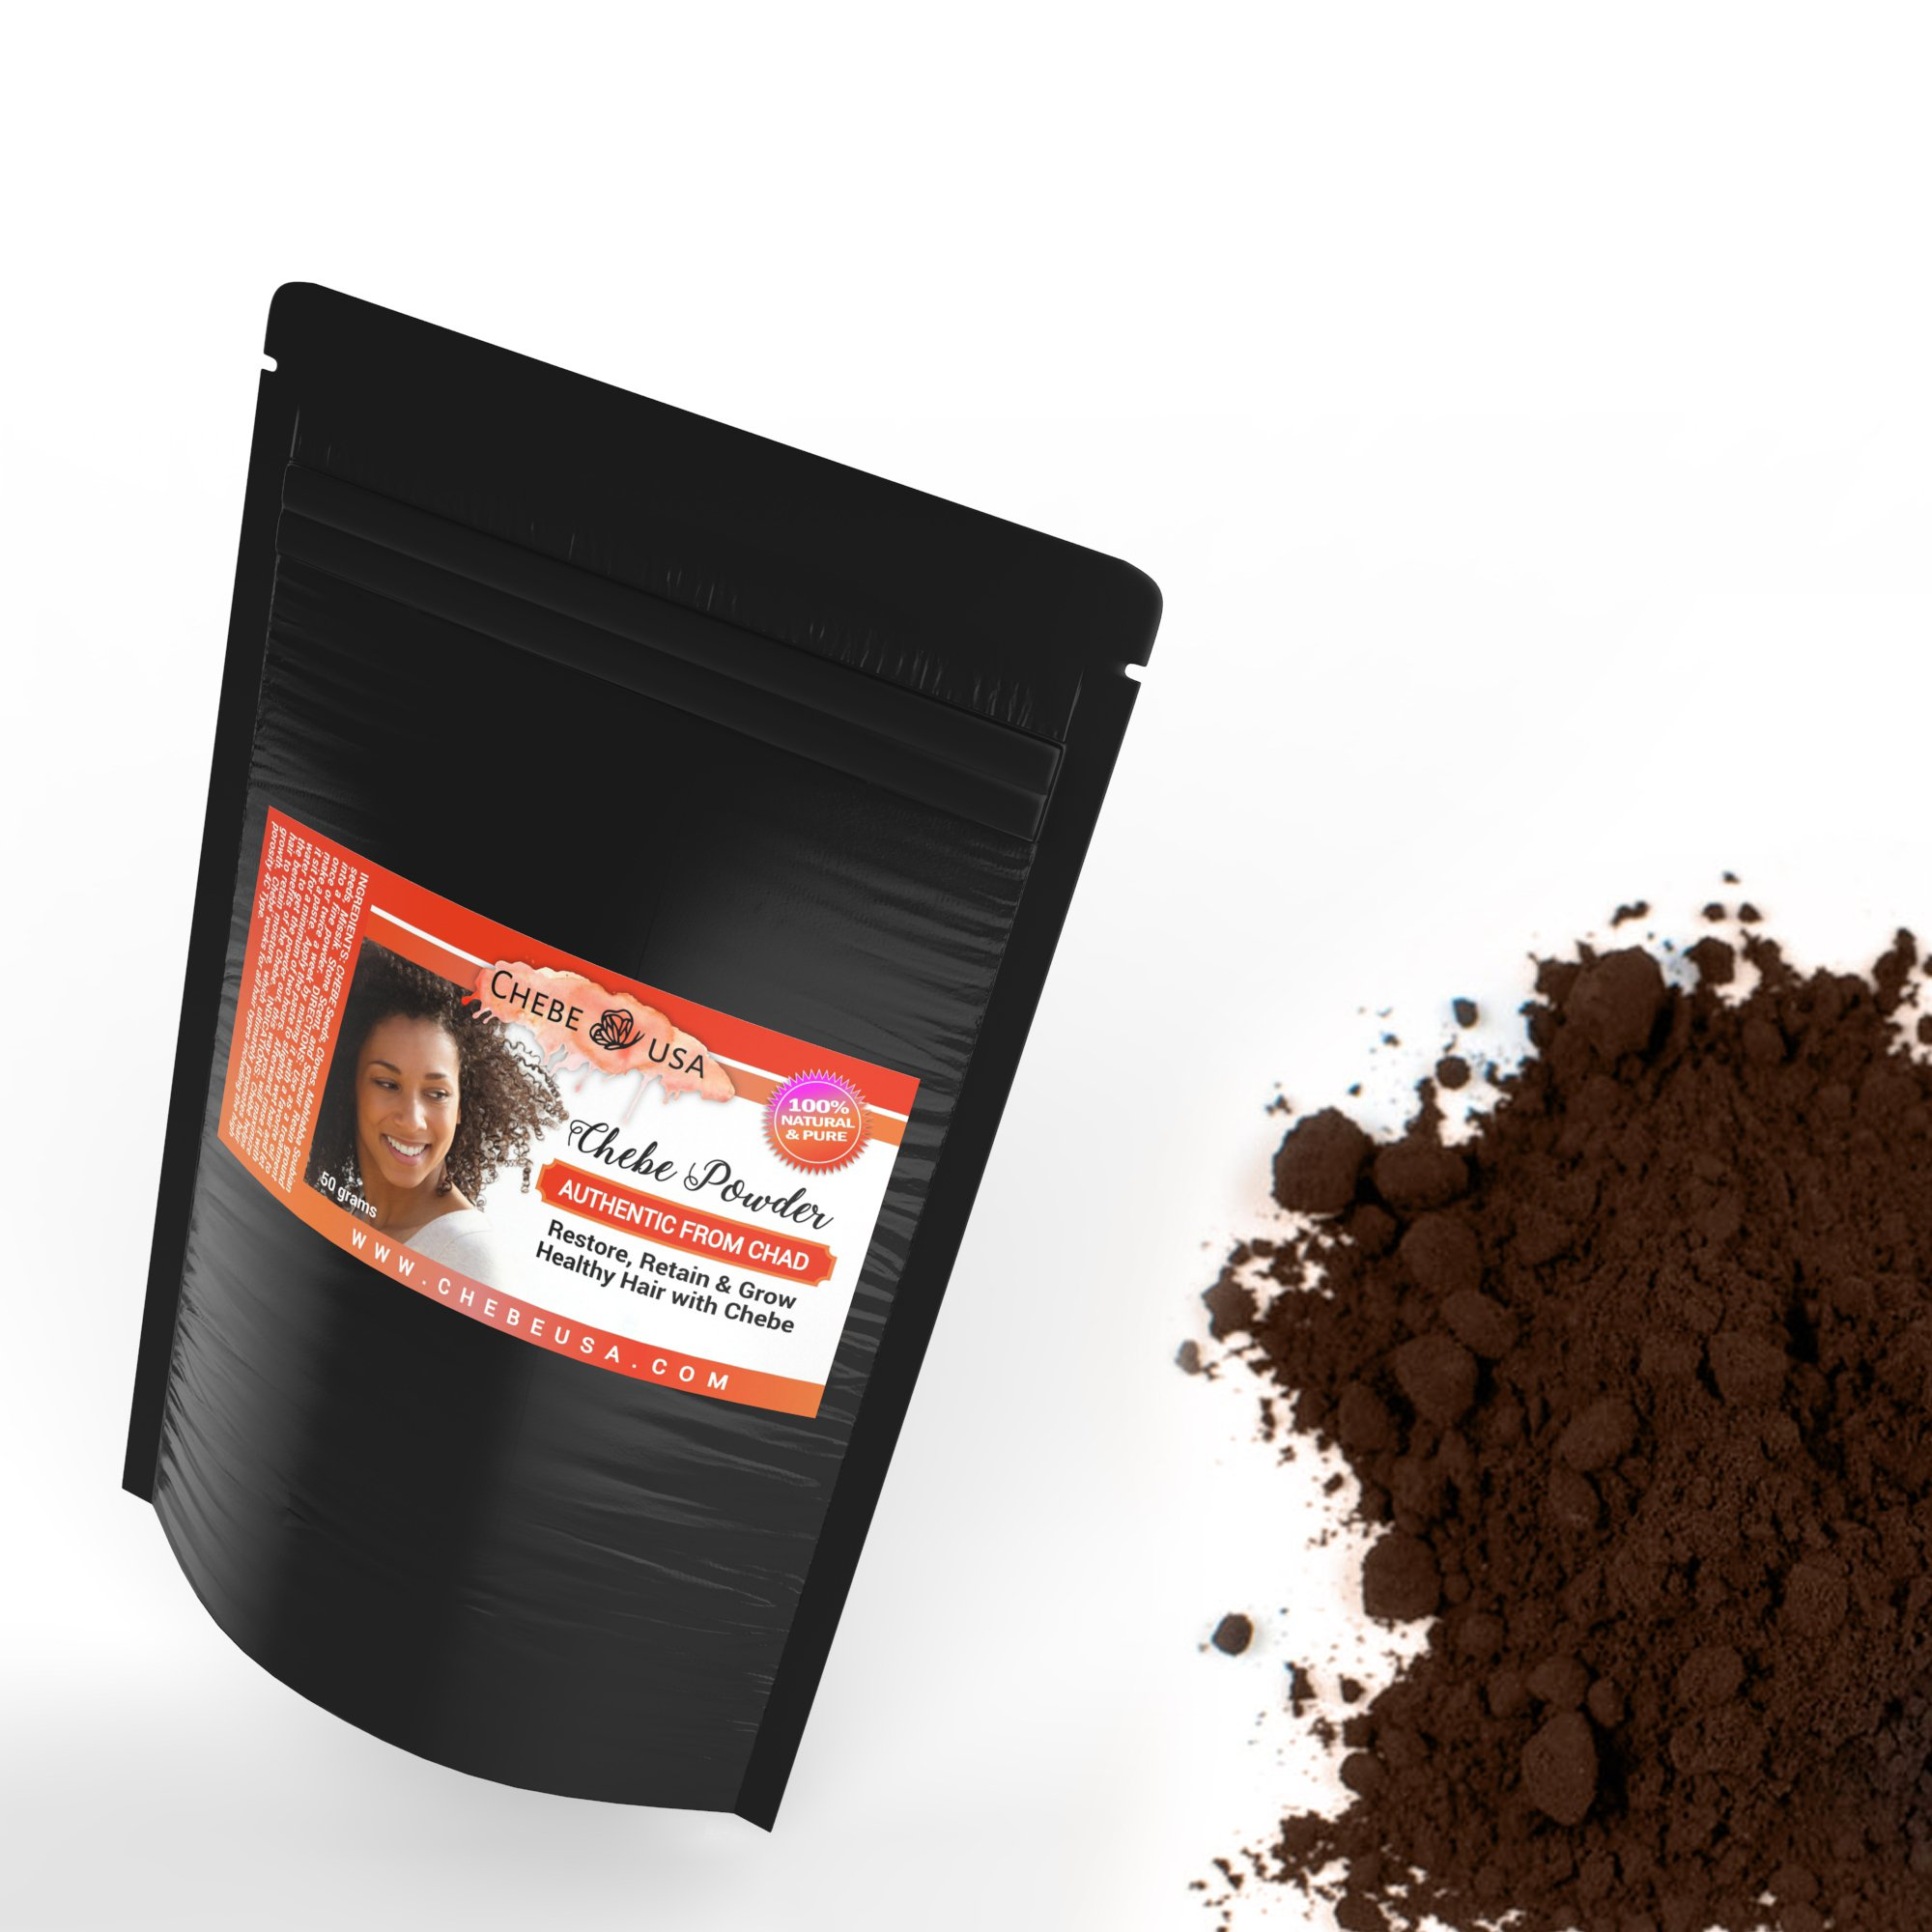 Chebe, Shebe Powder, Chebe Powder Chebe Mix From Chad – Strengthen Natural Hair Growth. Africa's Best Kept Secret - 50 grams by Uhuru Naturals